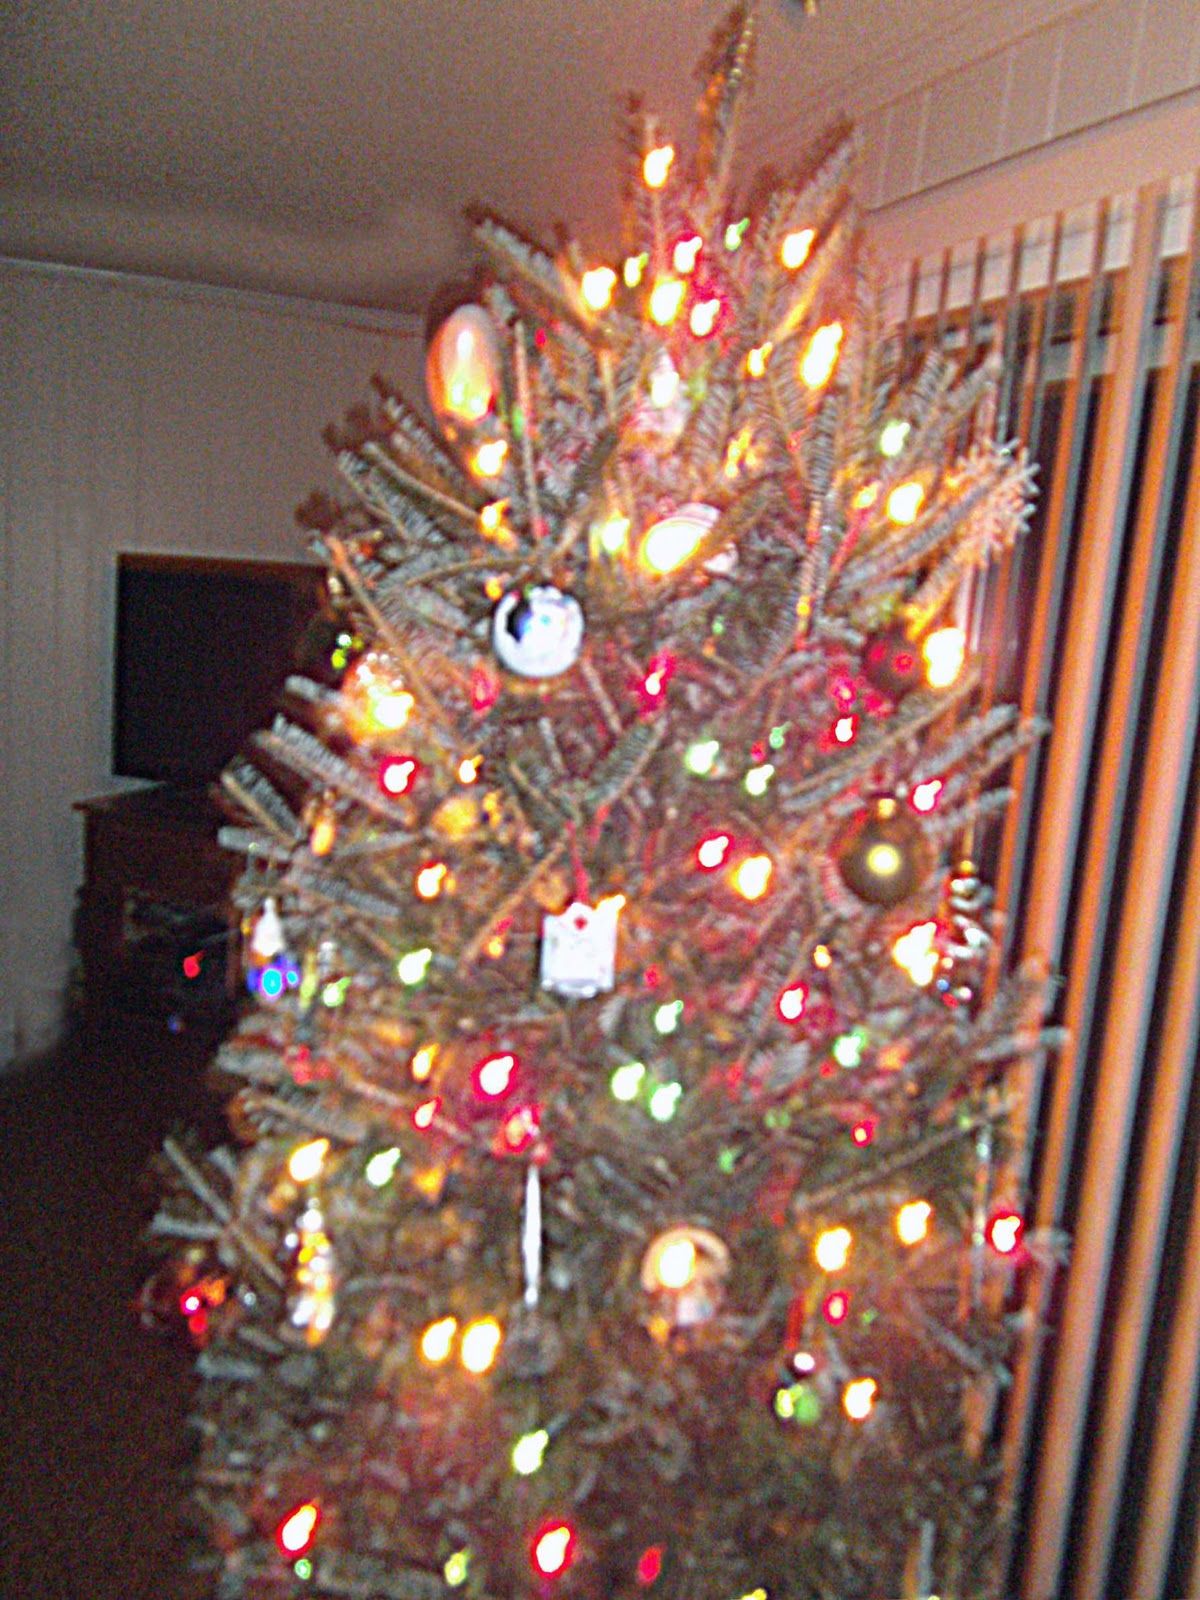 No Title Necessary: Oh Christmas Tree, O Christmas Tree...how lovely are thy branches